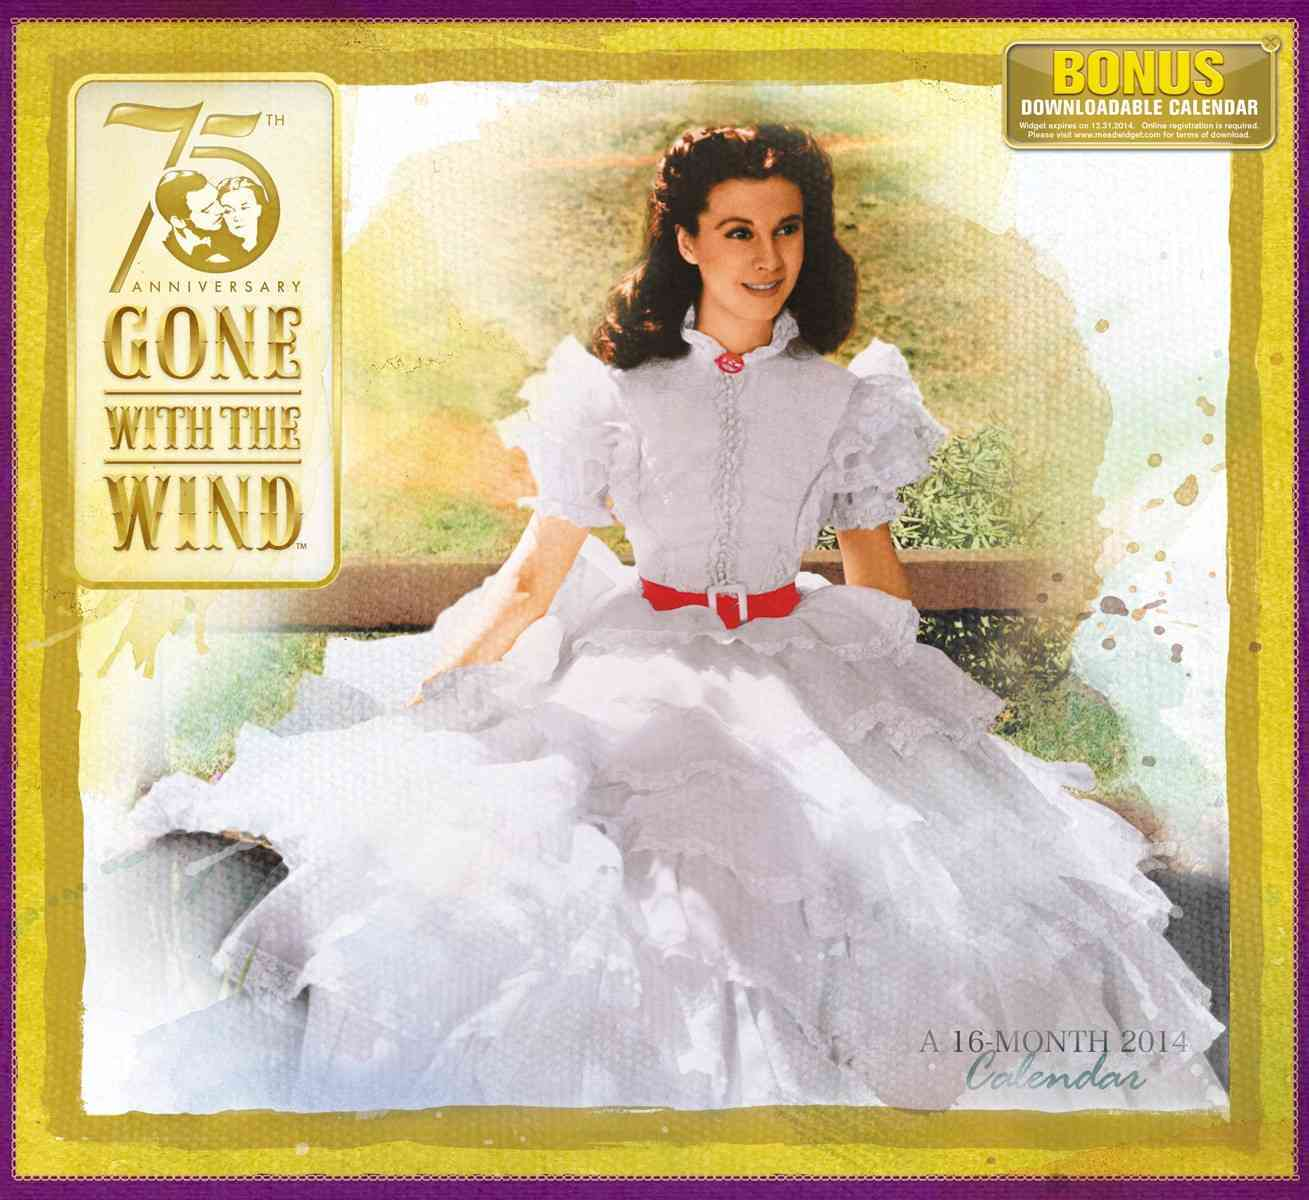 Gone With the Wind 2014 Calendar: 75th Anniversary (Calendar)